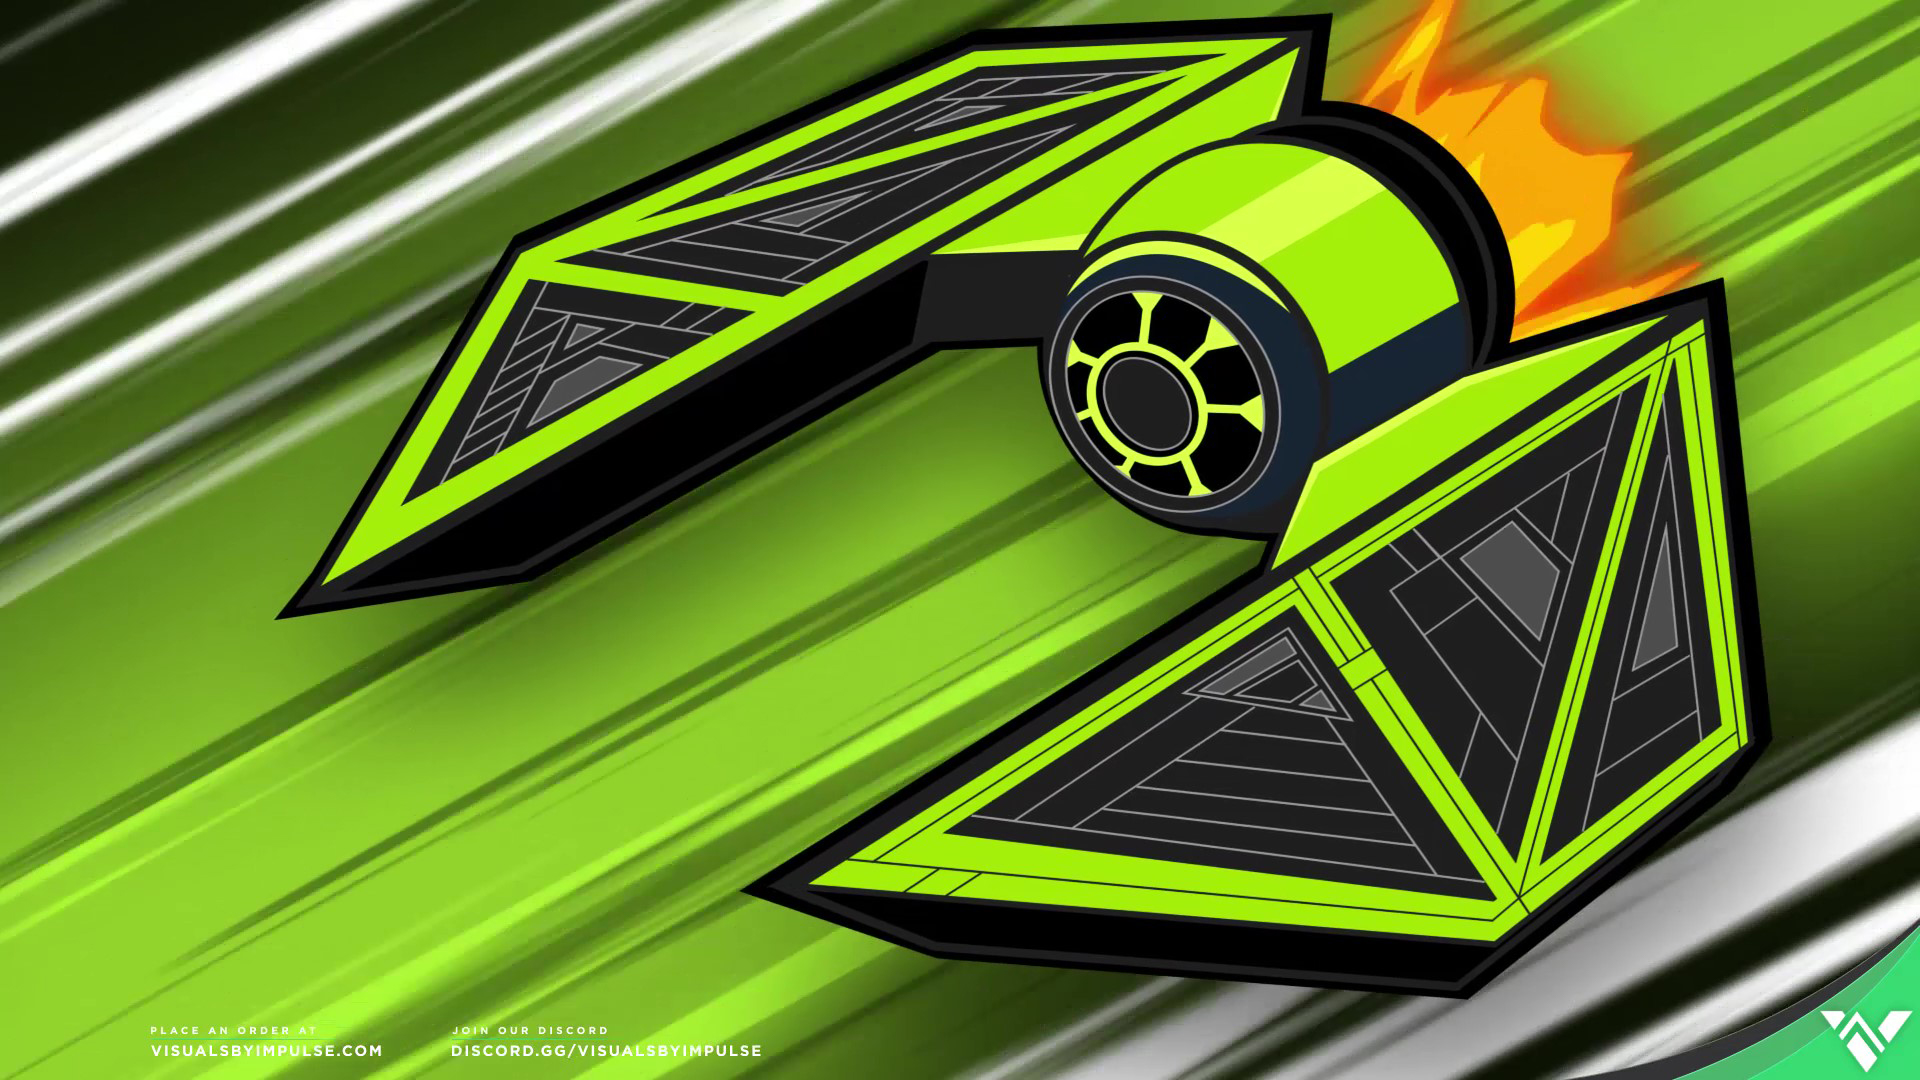 Flying Space Ship in Green fast